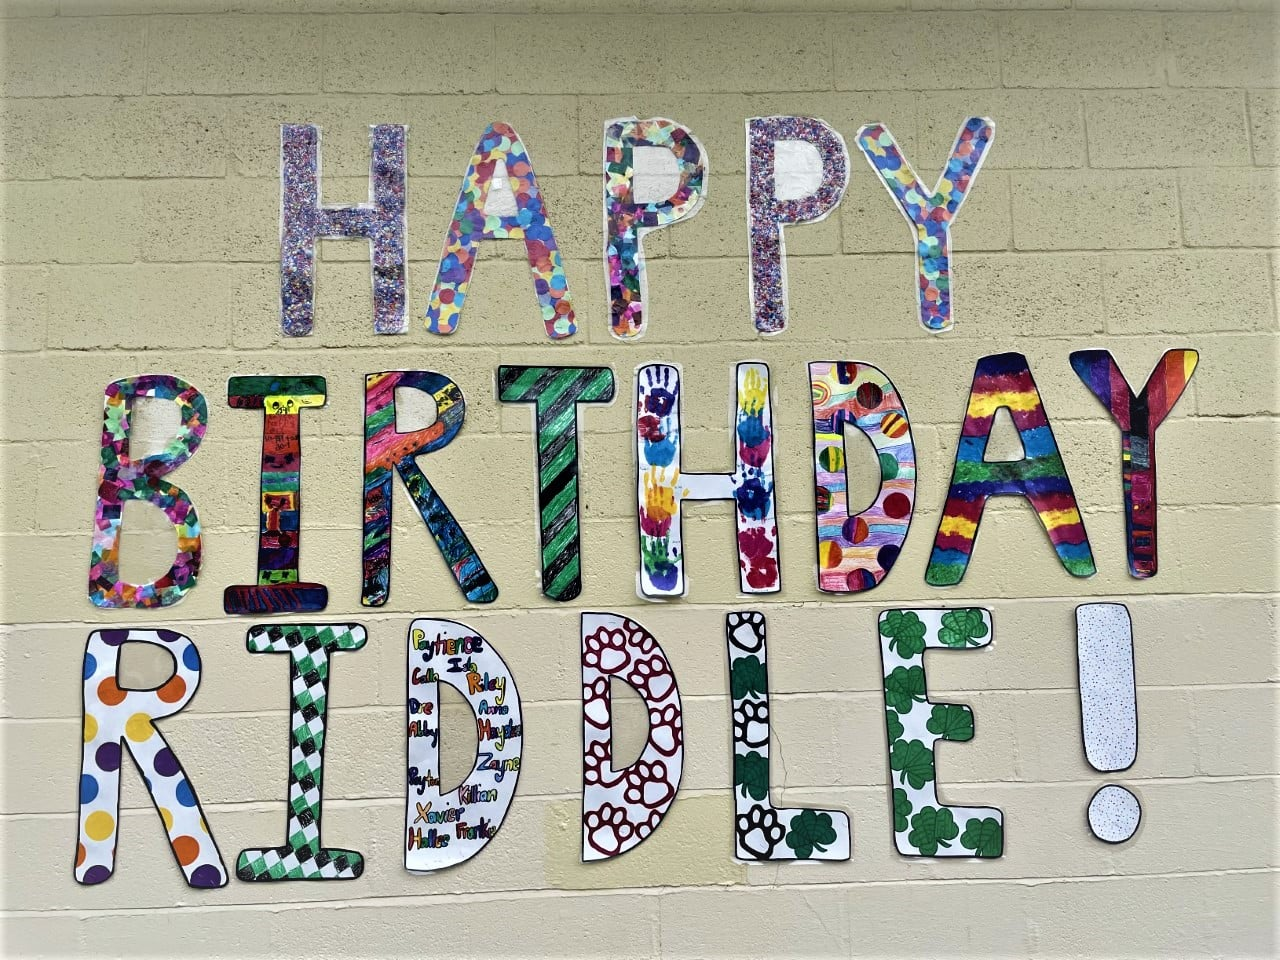 Happy Birthday Riddle artwork by K-2 students.